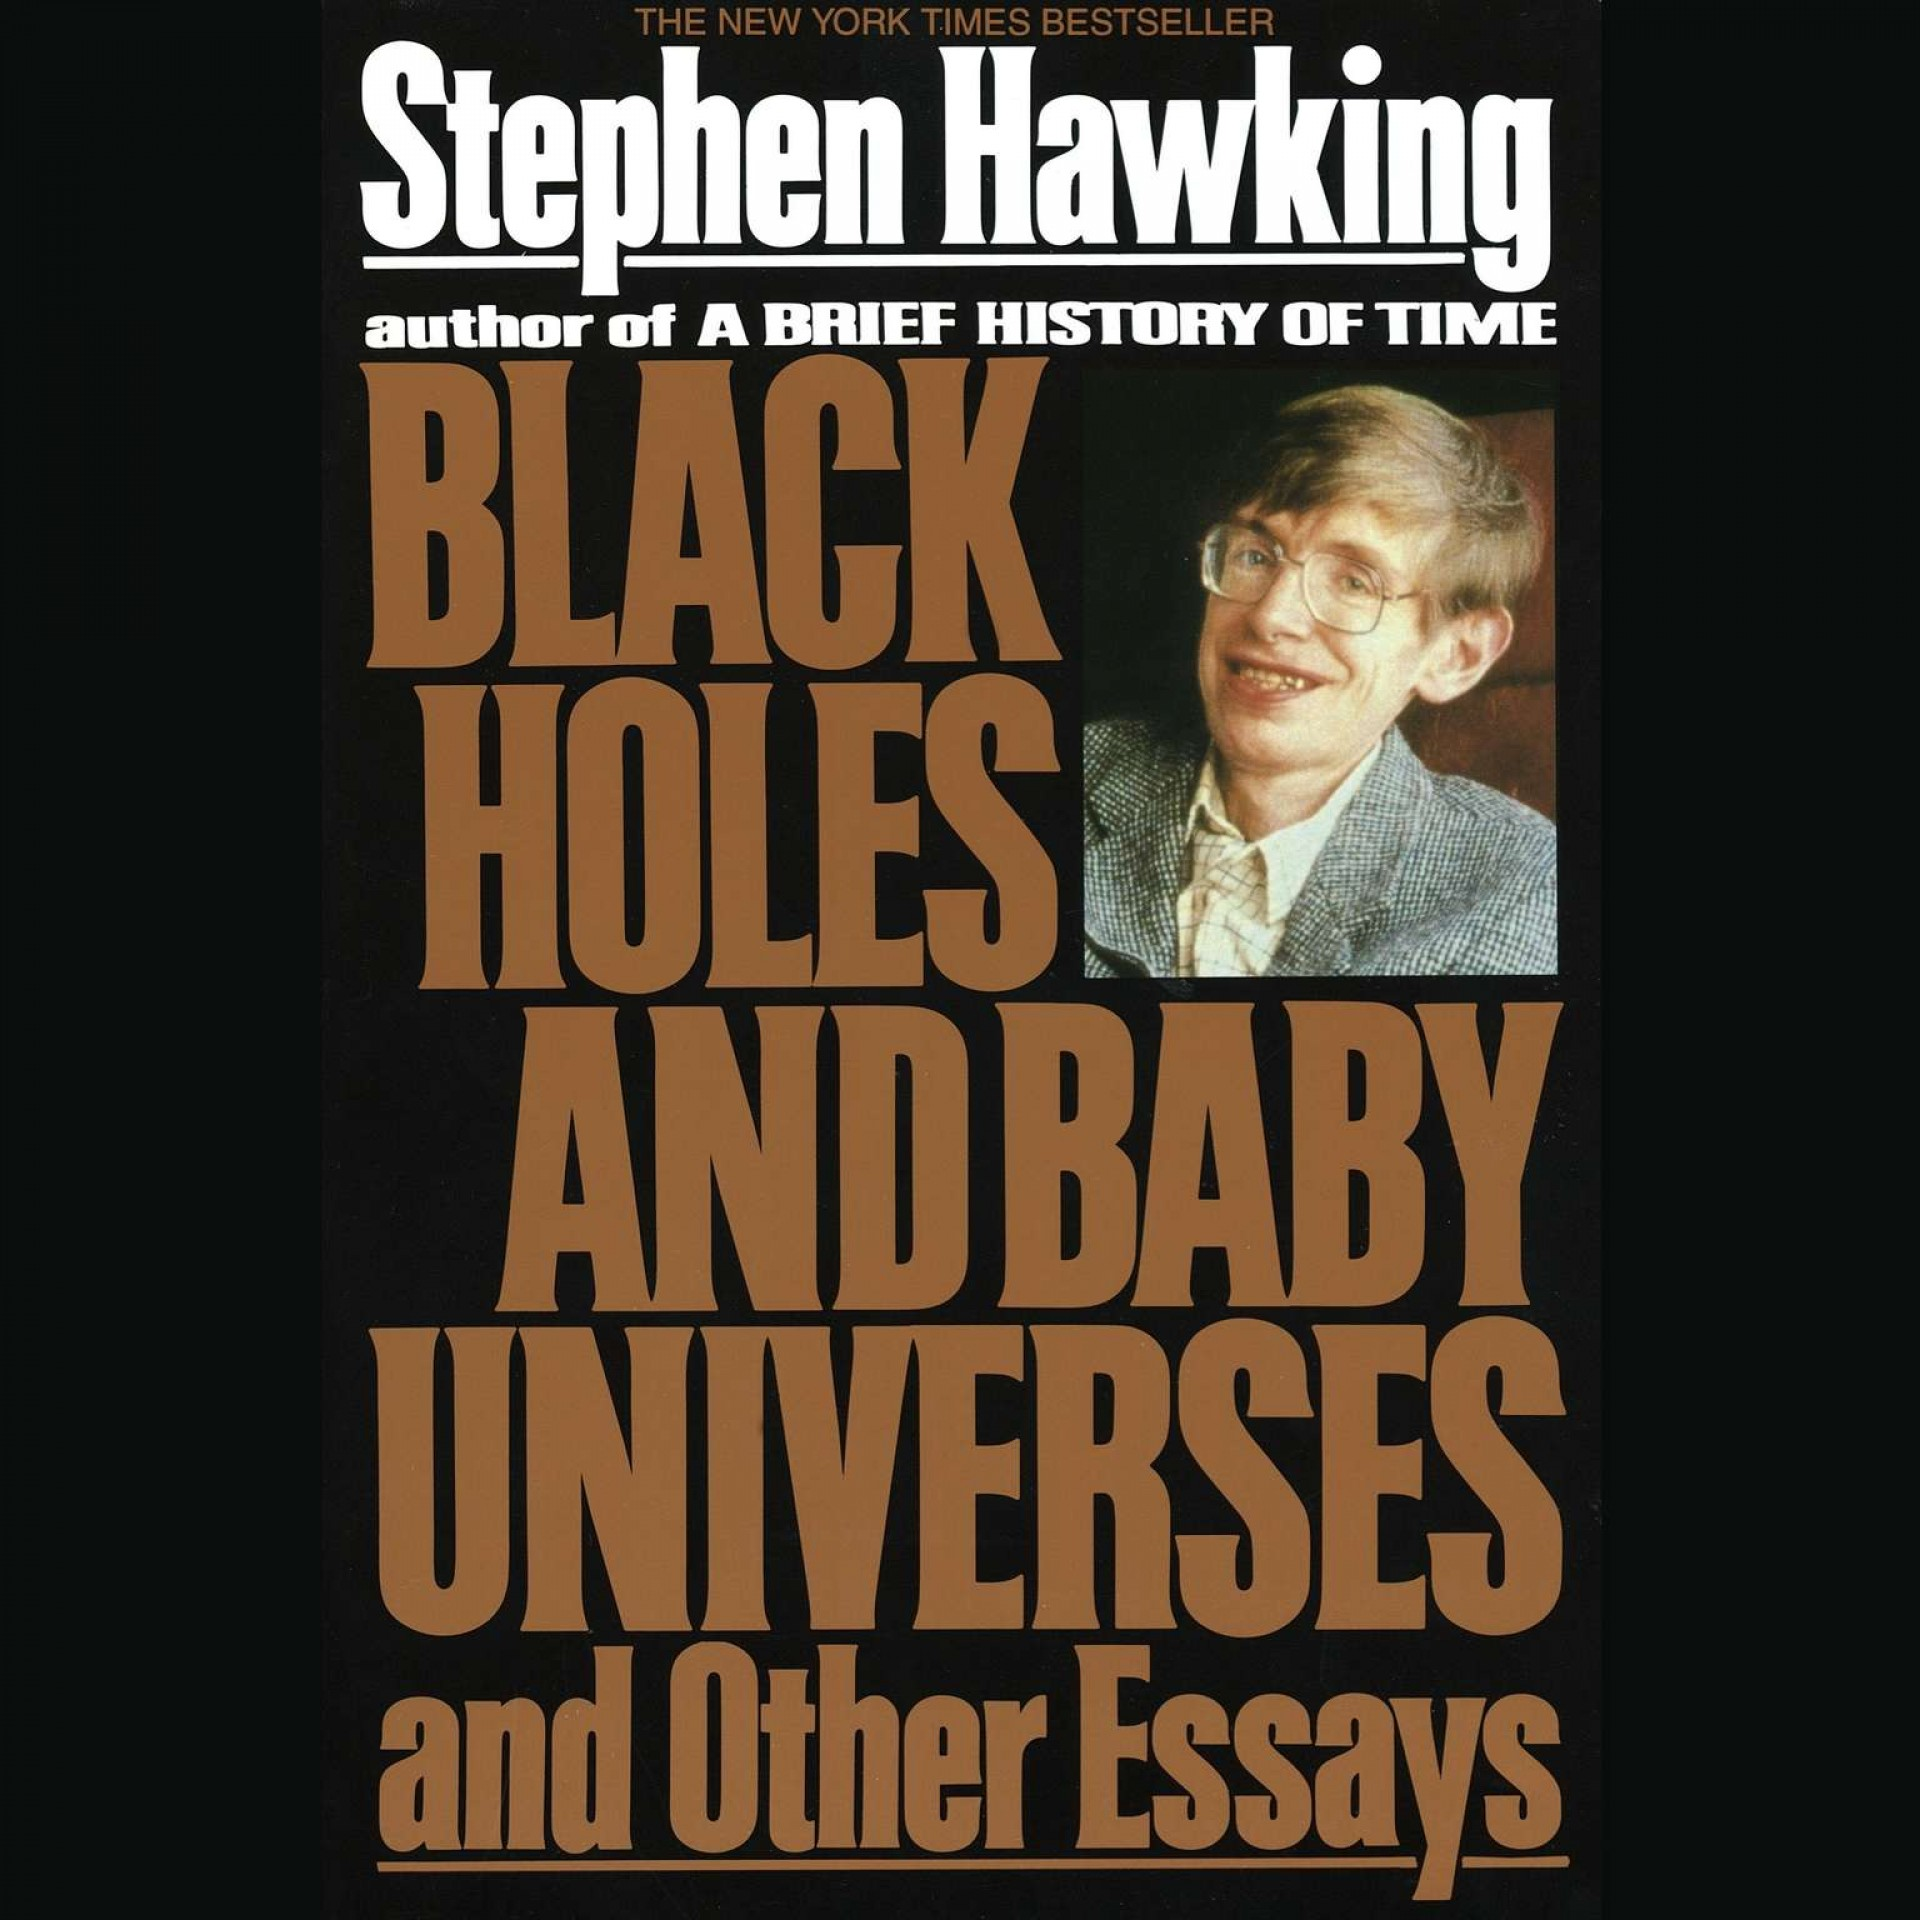 005 Essay Example Black Holes And Baby Universes Other Essays Atqf Square Unique Review Ebook Free Download Amazon 1920